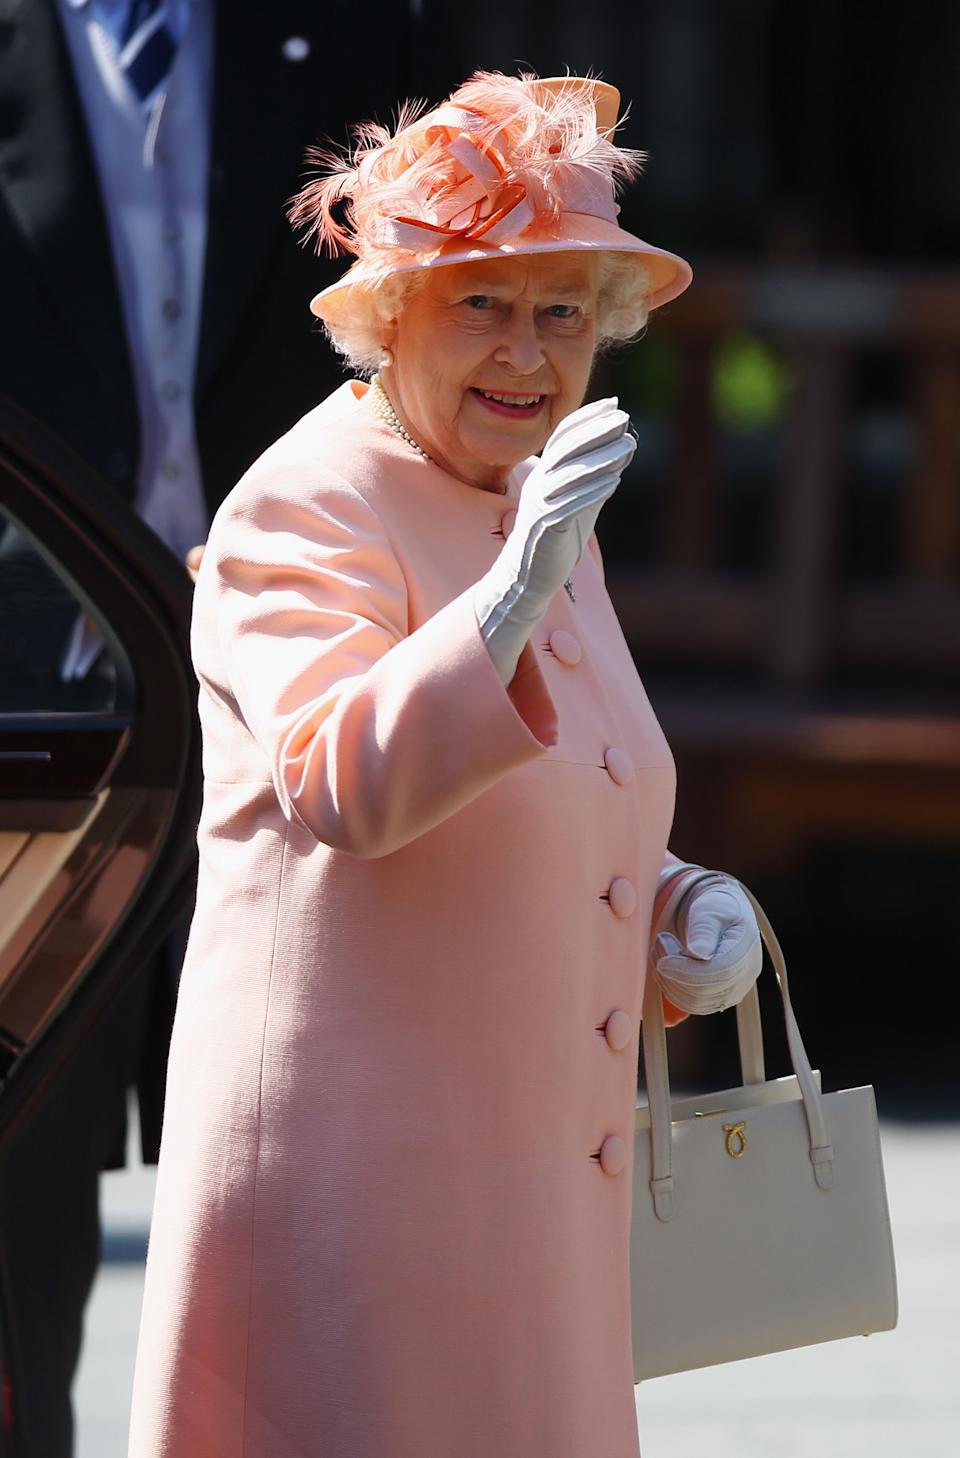 <p>It may have been a low-key event in royal terms, but the Queen gave a wave to those waiting to catch a glimpse. (Jeff J Mitchell/Getty Images)</p>